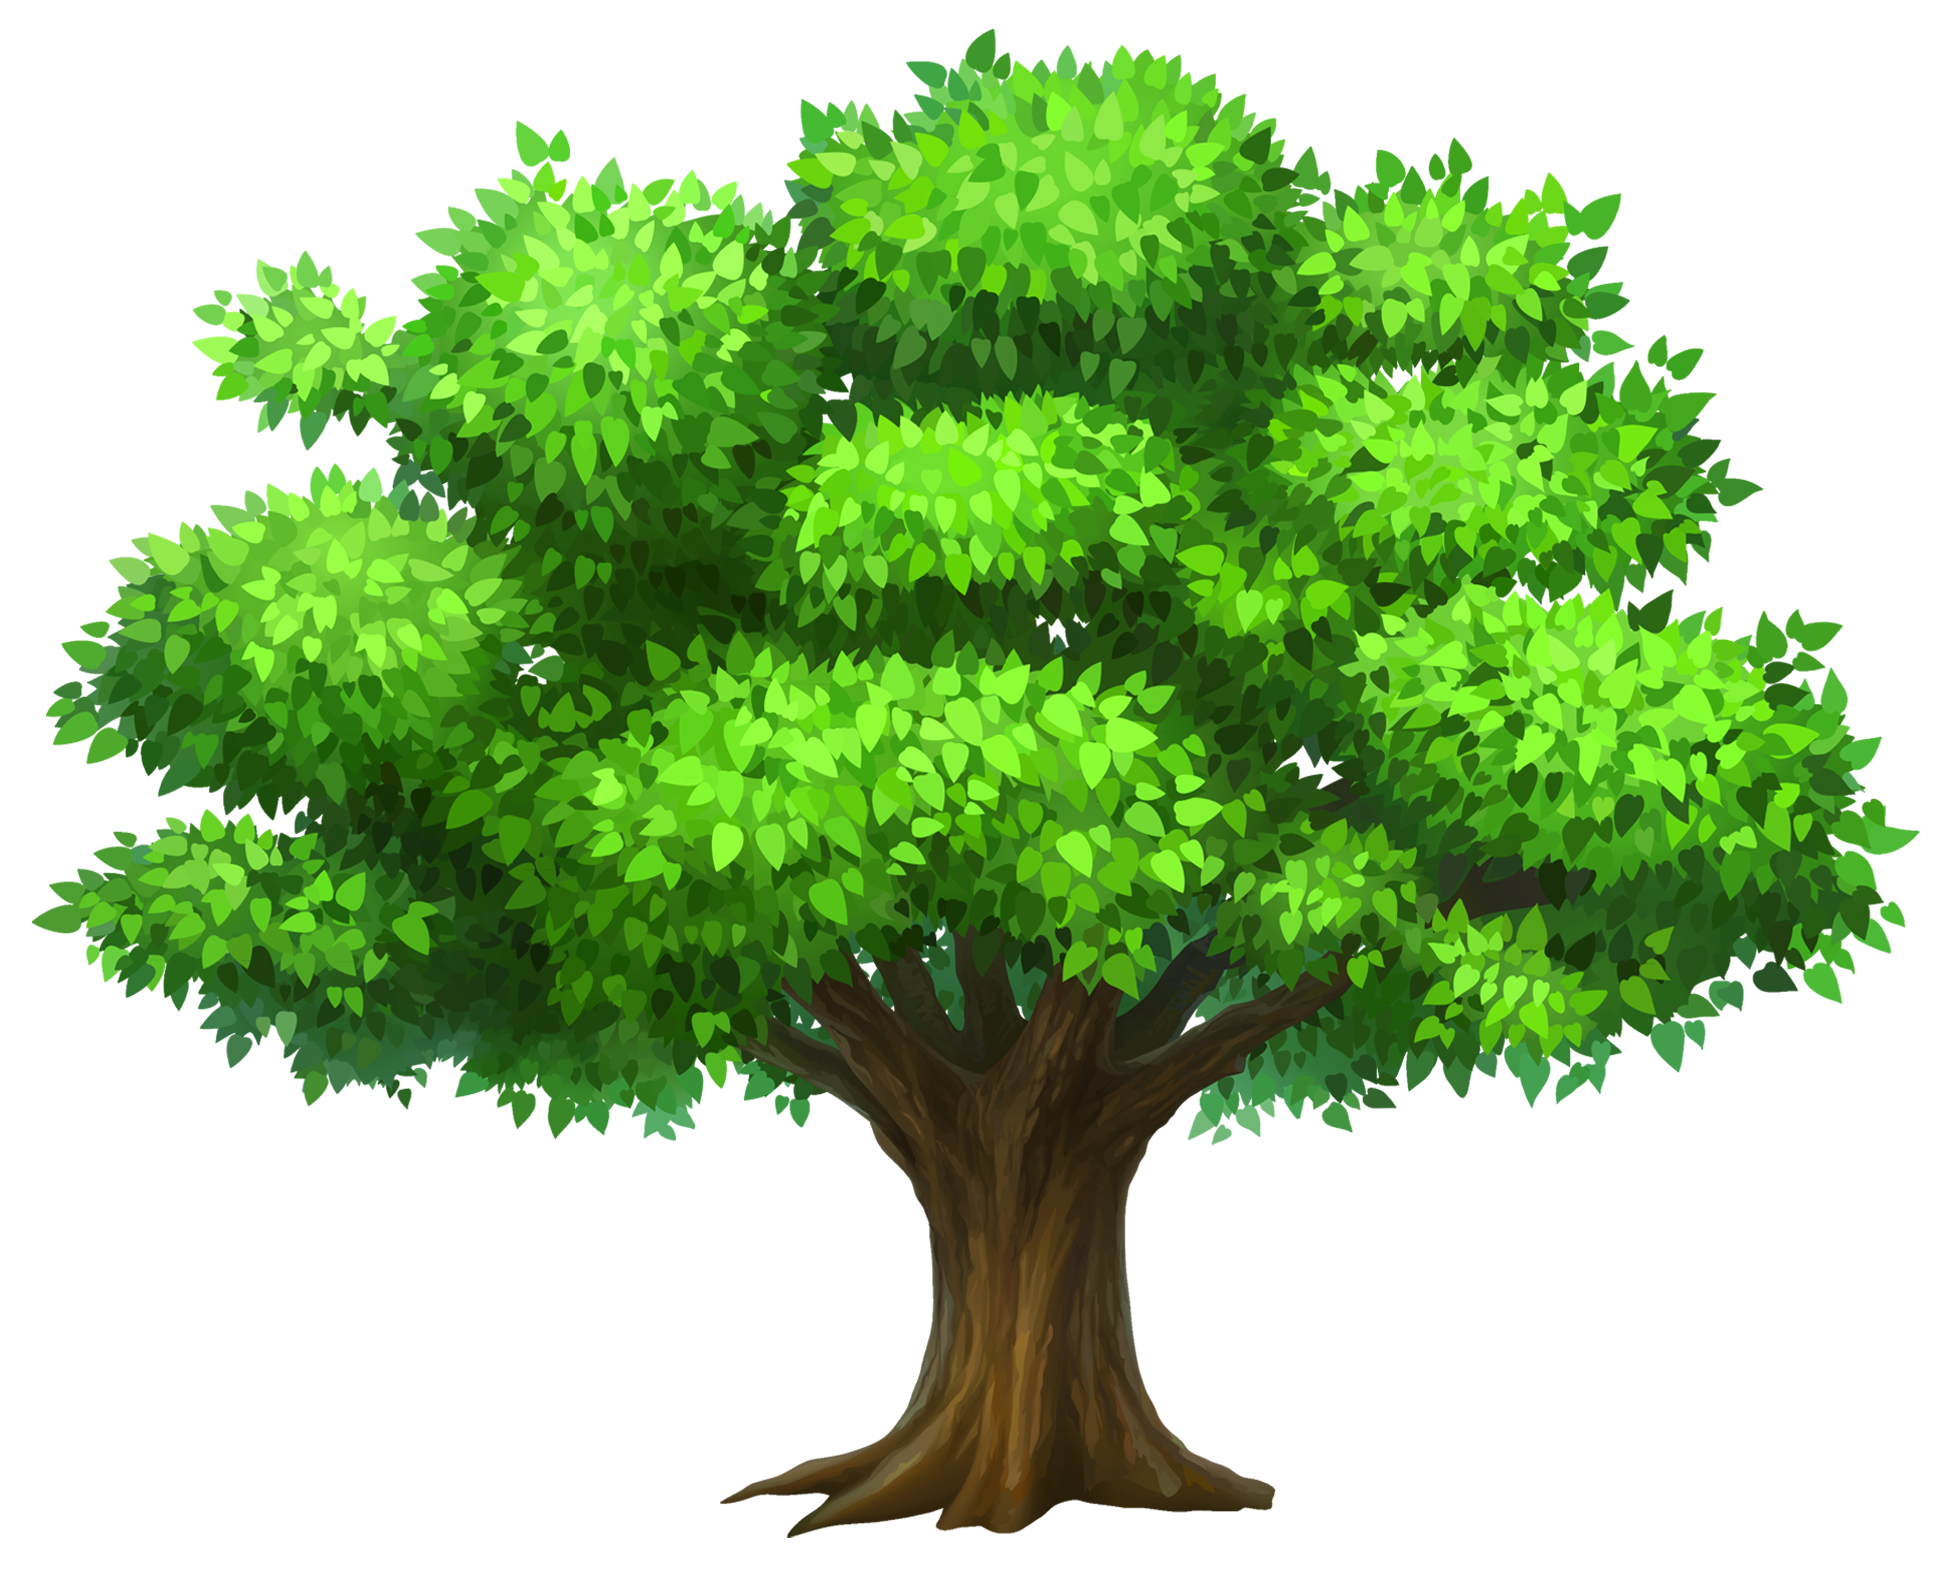 Tree clipart high resolution Clip Download Art Free Chestnut